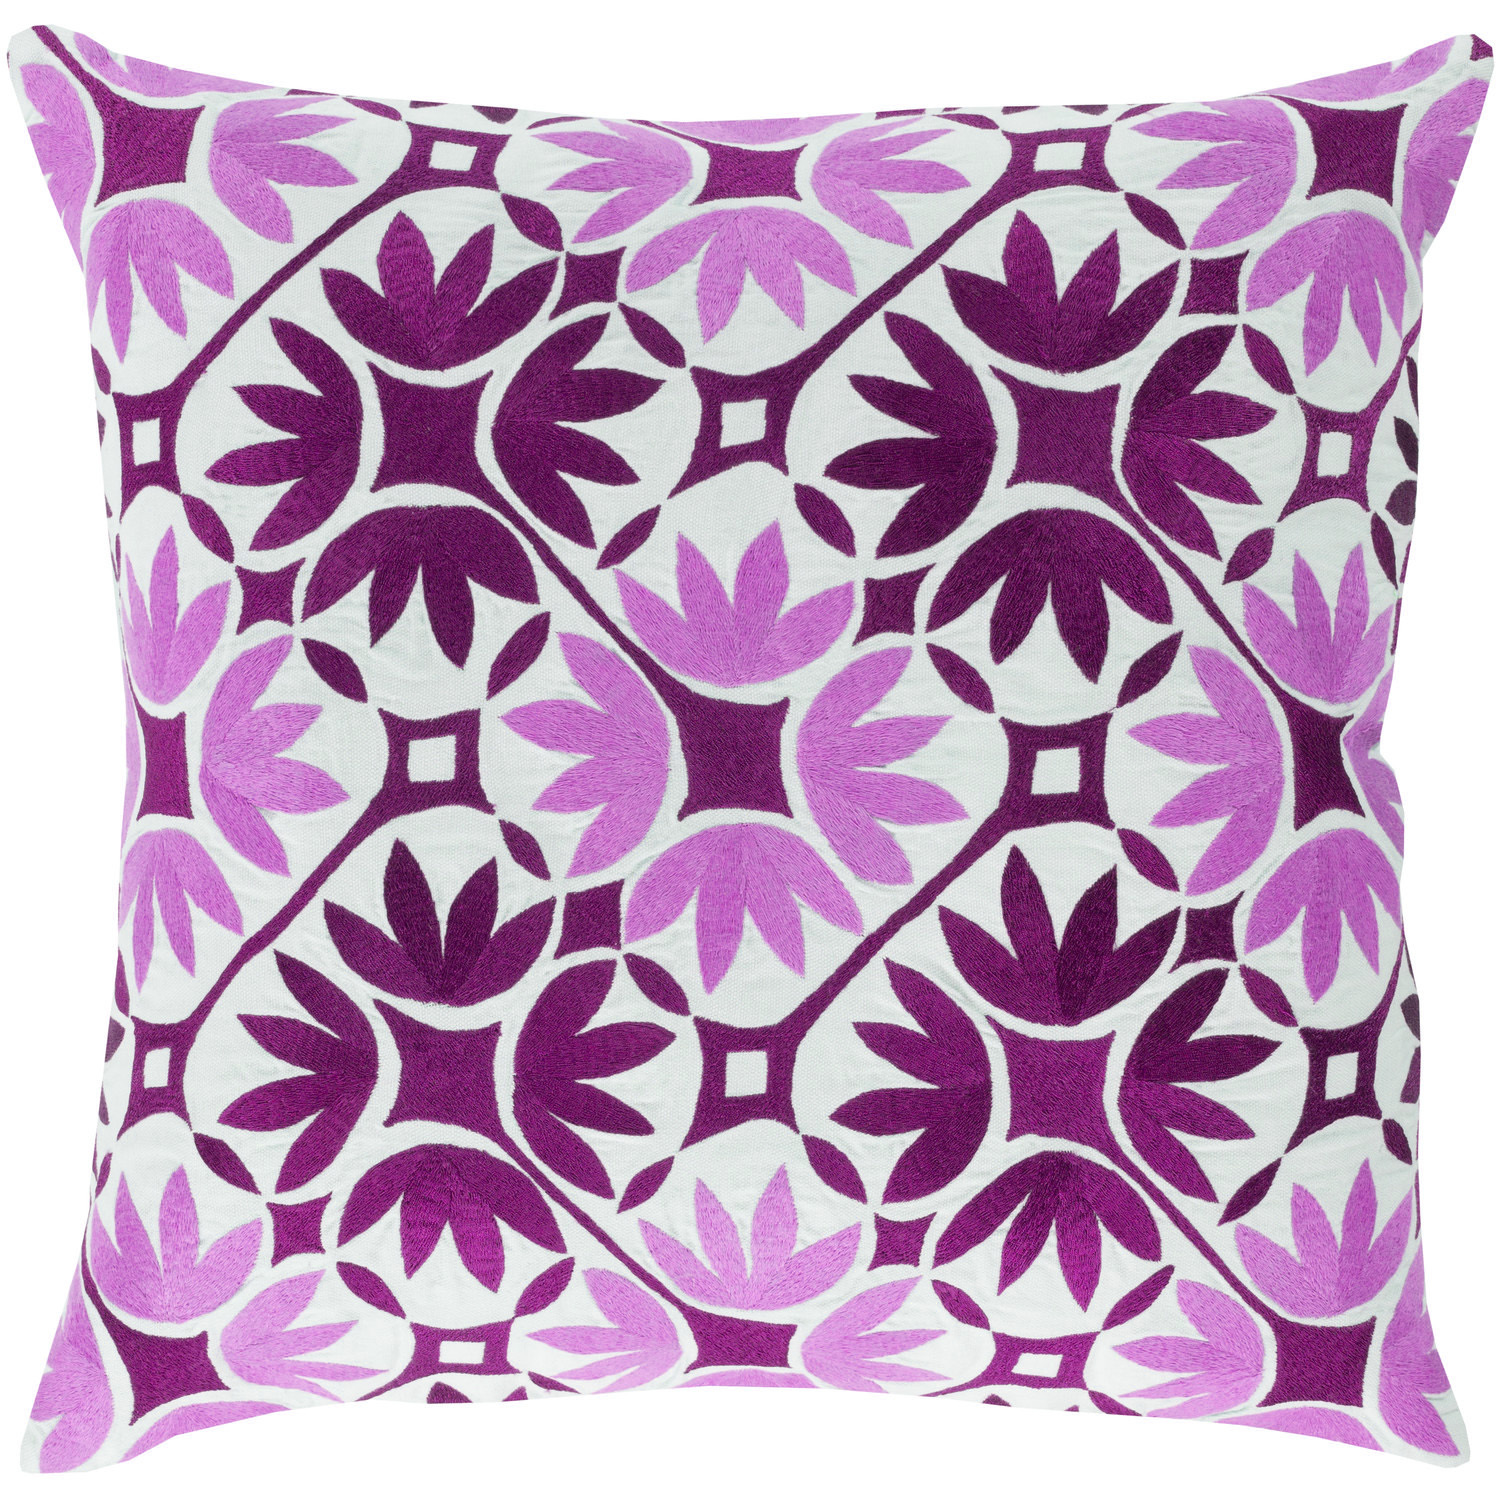 Bloom Embroidered Pillow